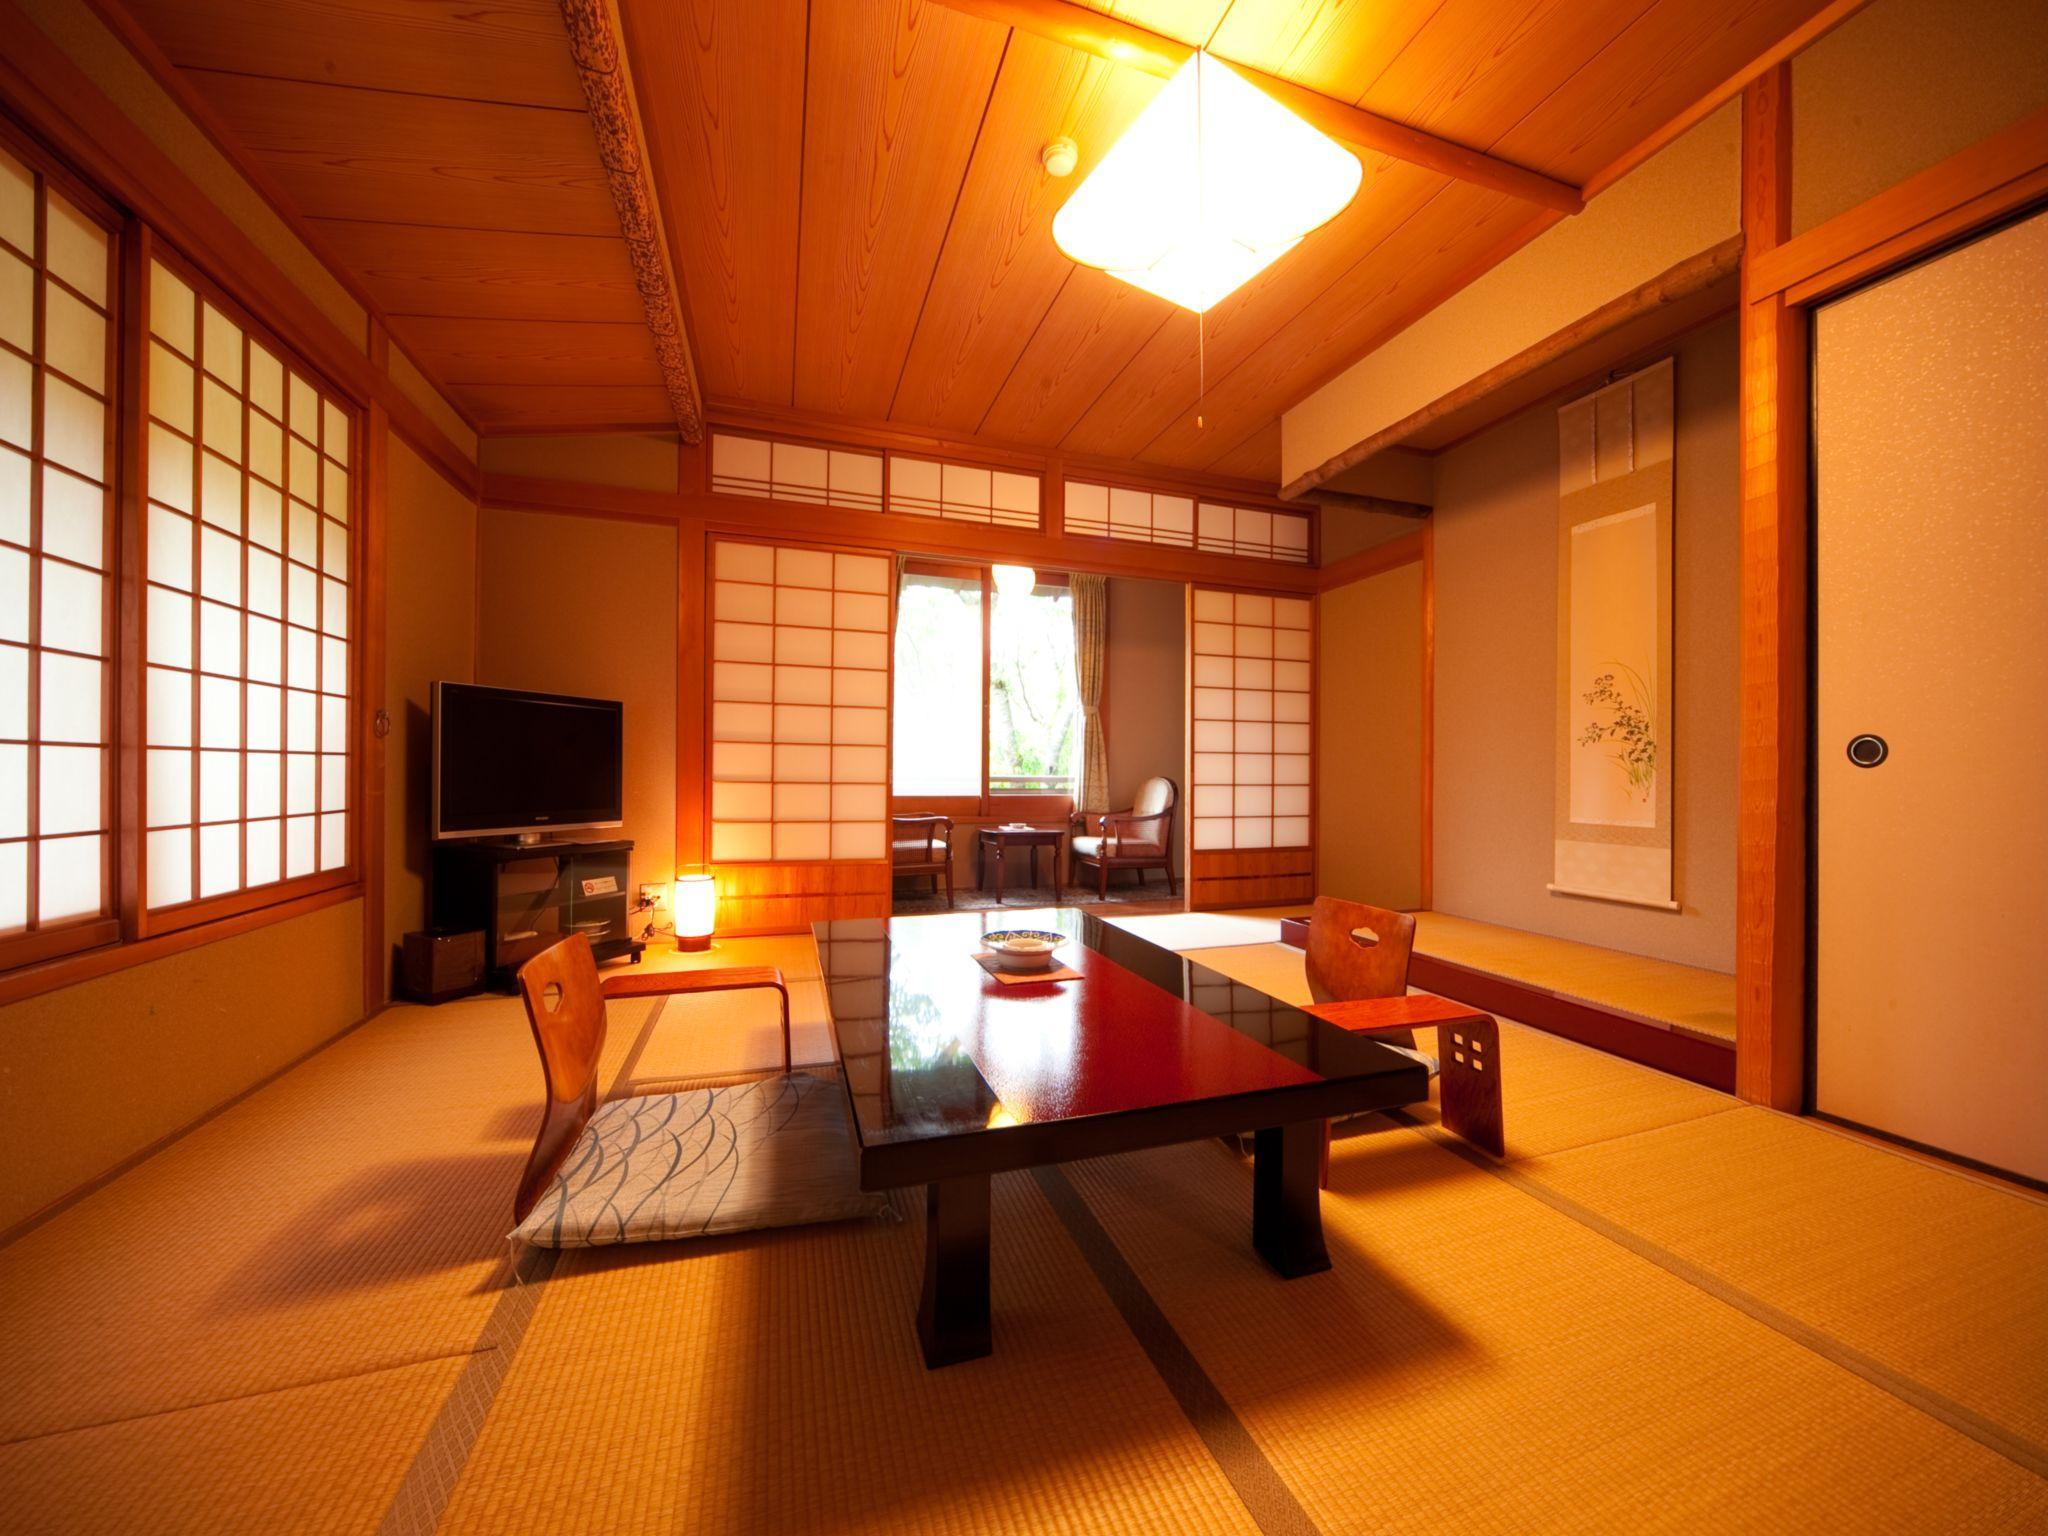 Japanese Style Room with Shabu-shabu Dinner